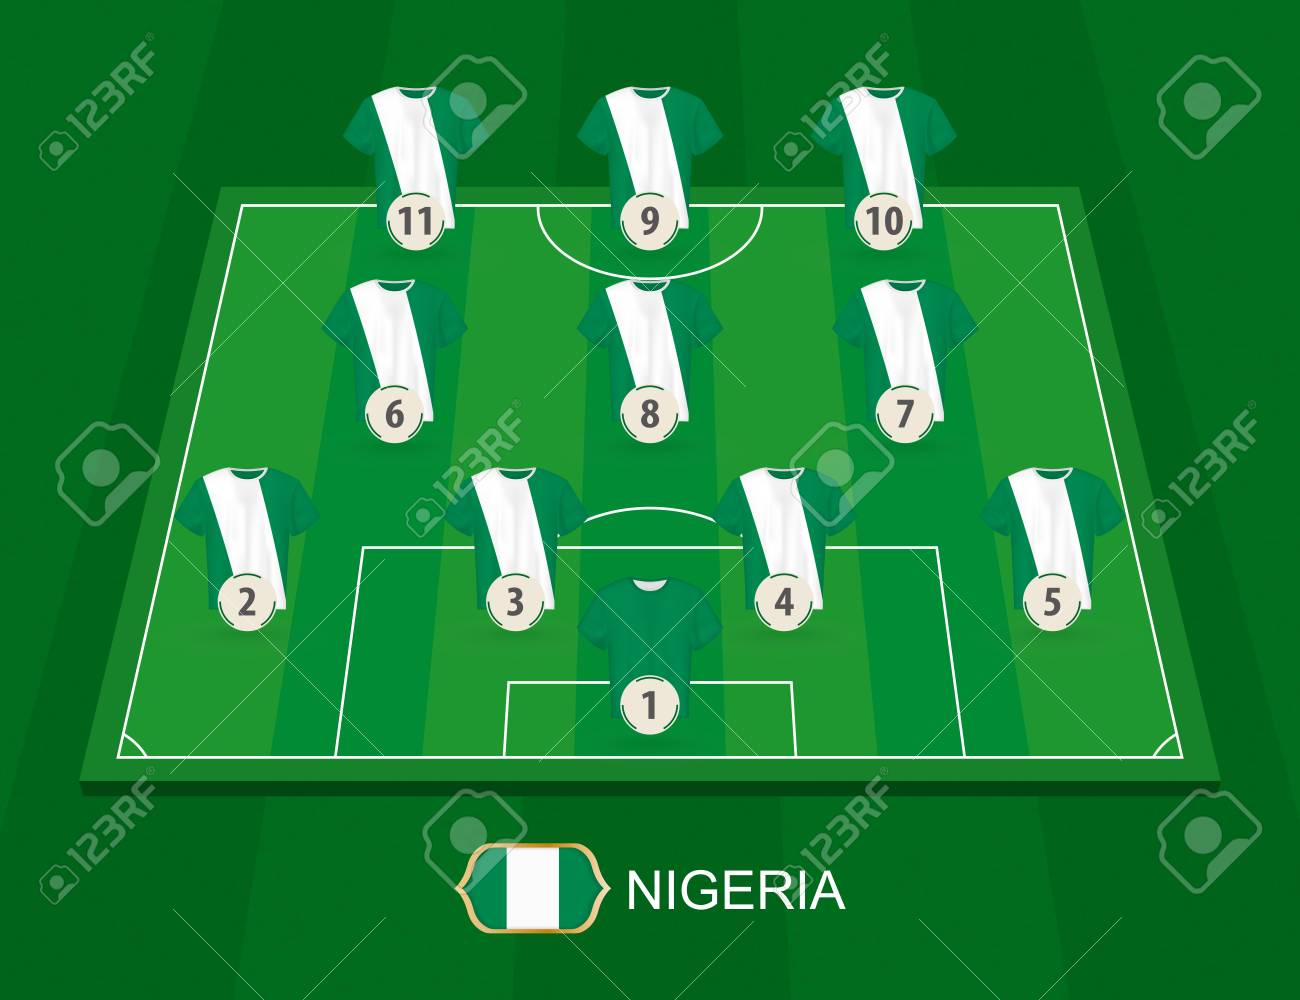 Soccer Field With The Nigeria National Team Players Lineups Royalty Free Cliparts Vectors And Stock Illustration Image 105106950